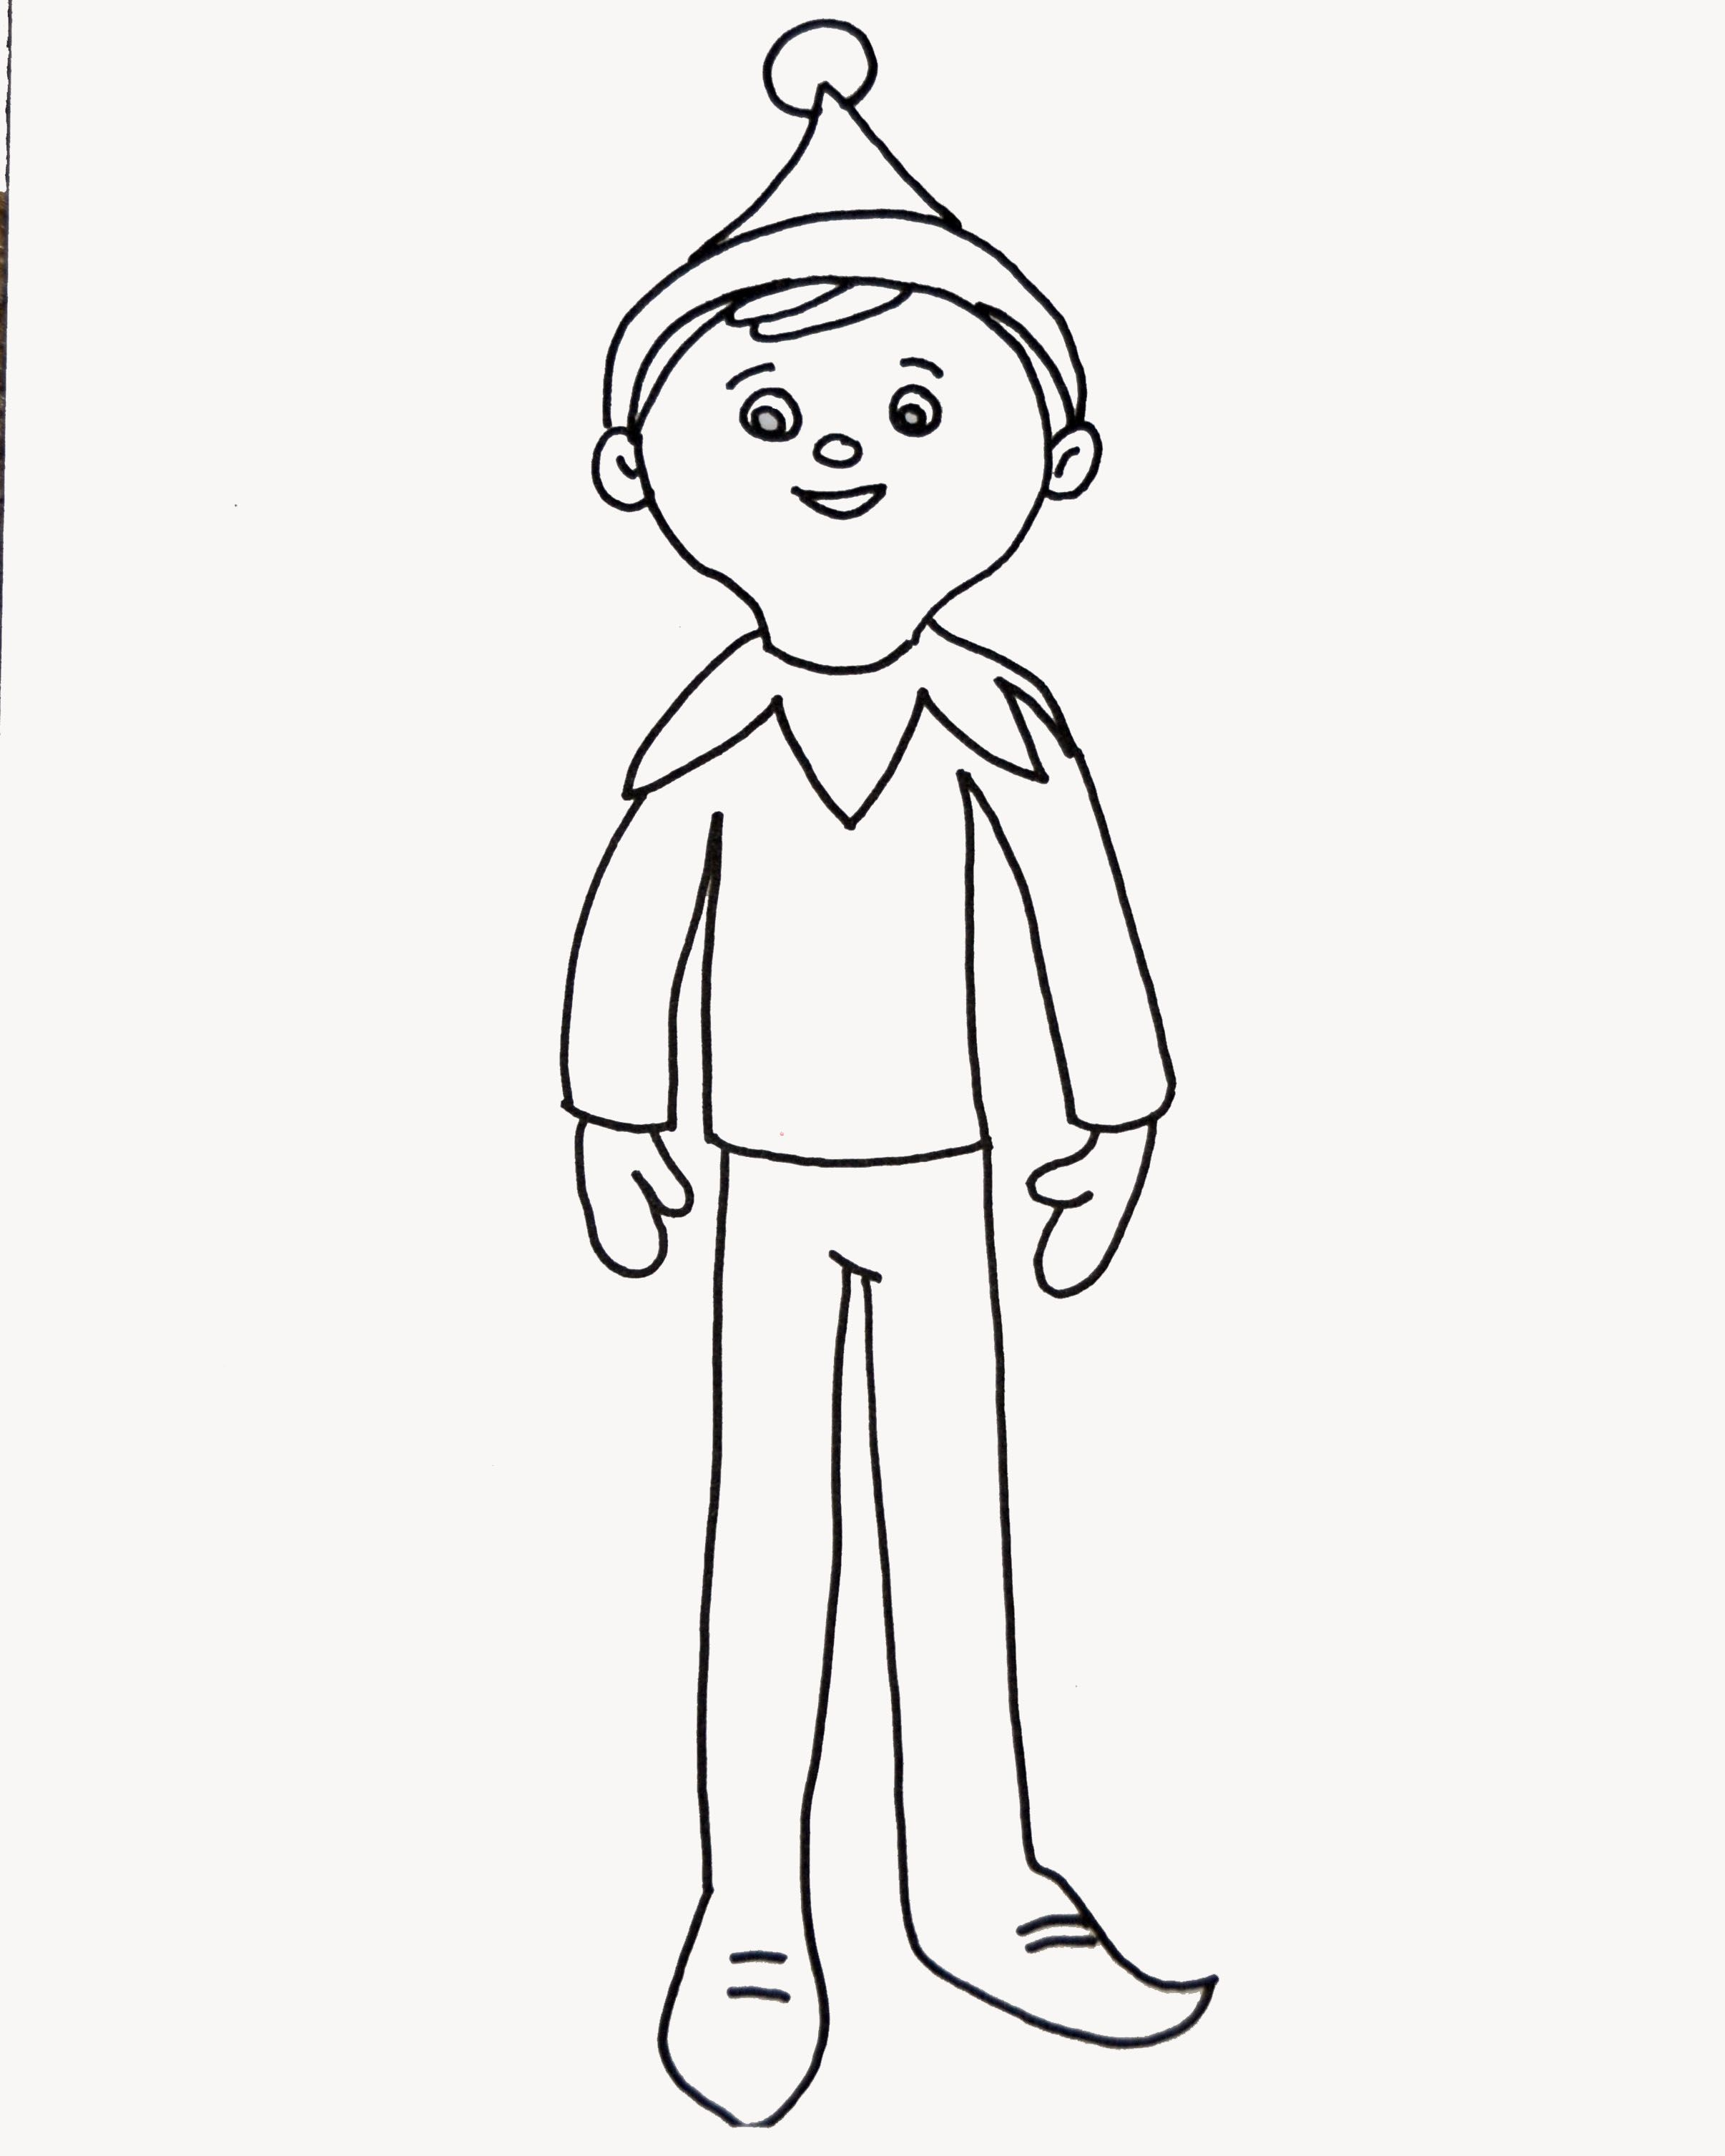 Elf on the shelf coloring page for elfie and the kids to